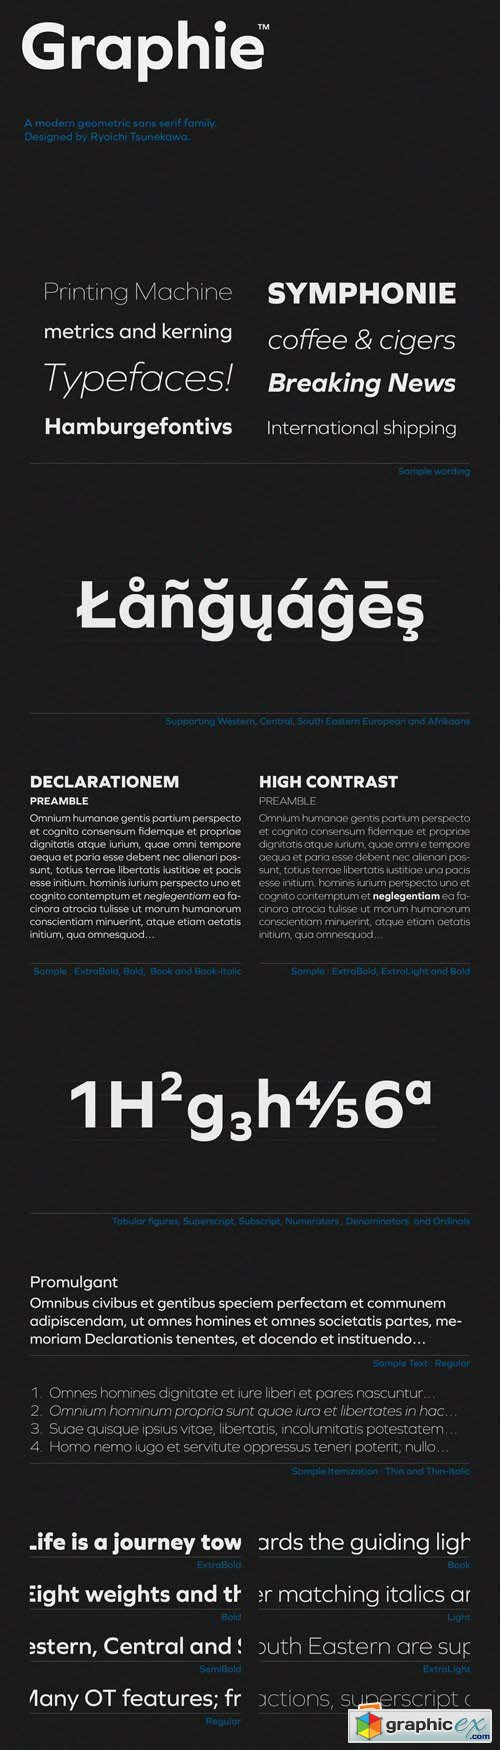 Graphie Font Family - 16 Fonts for $300